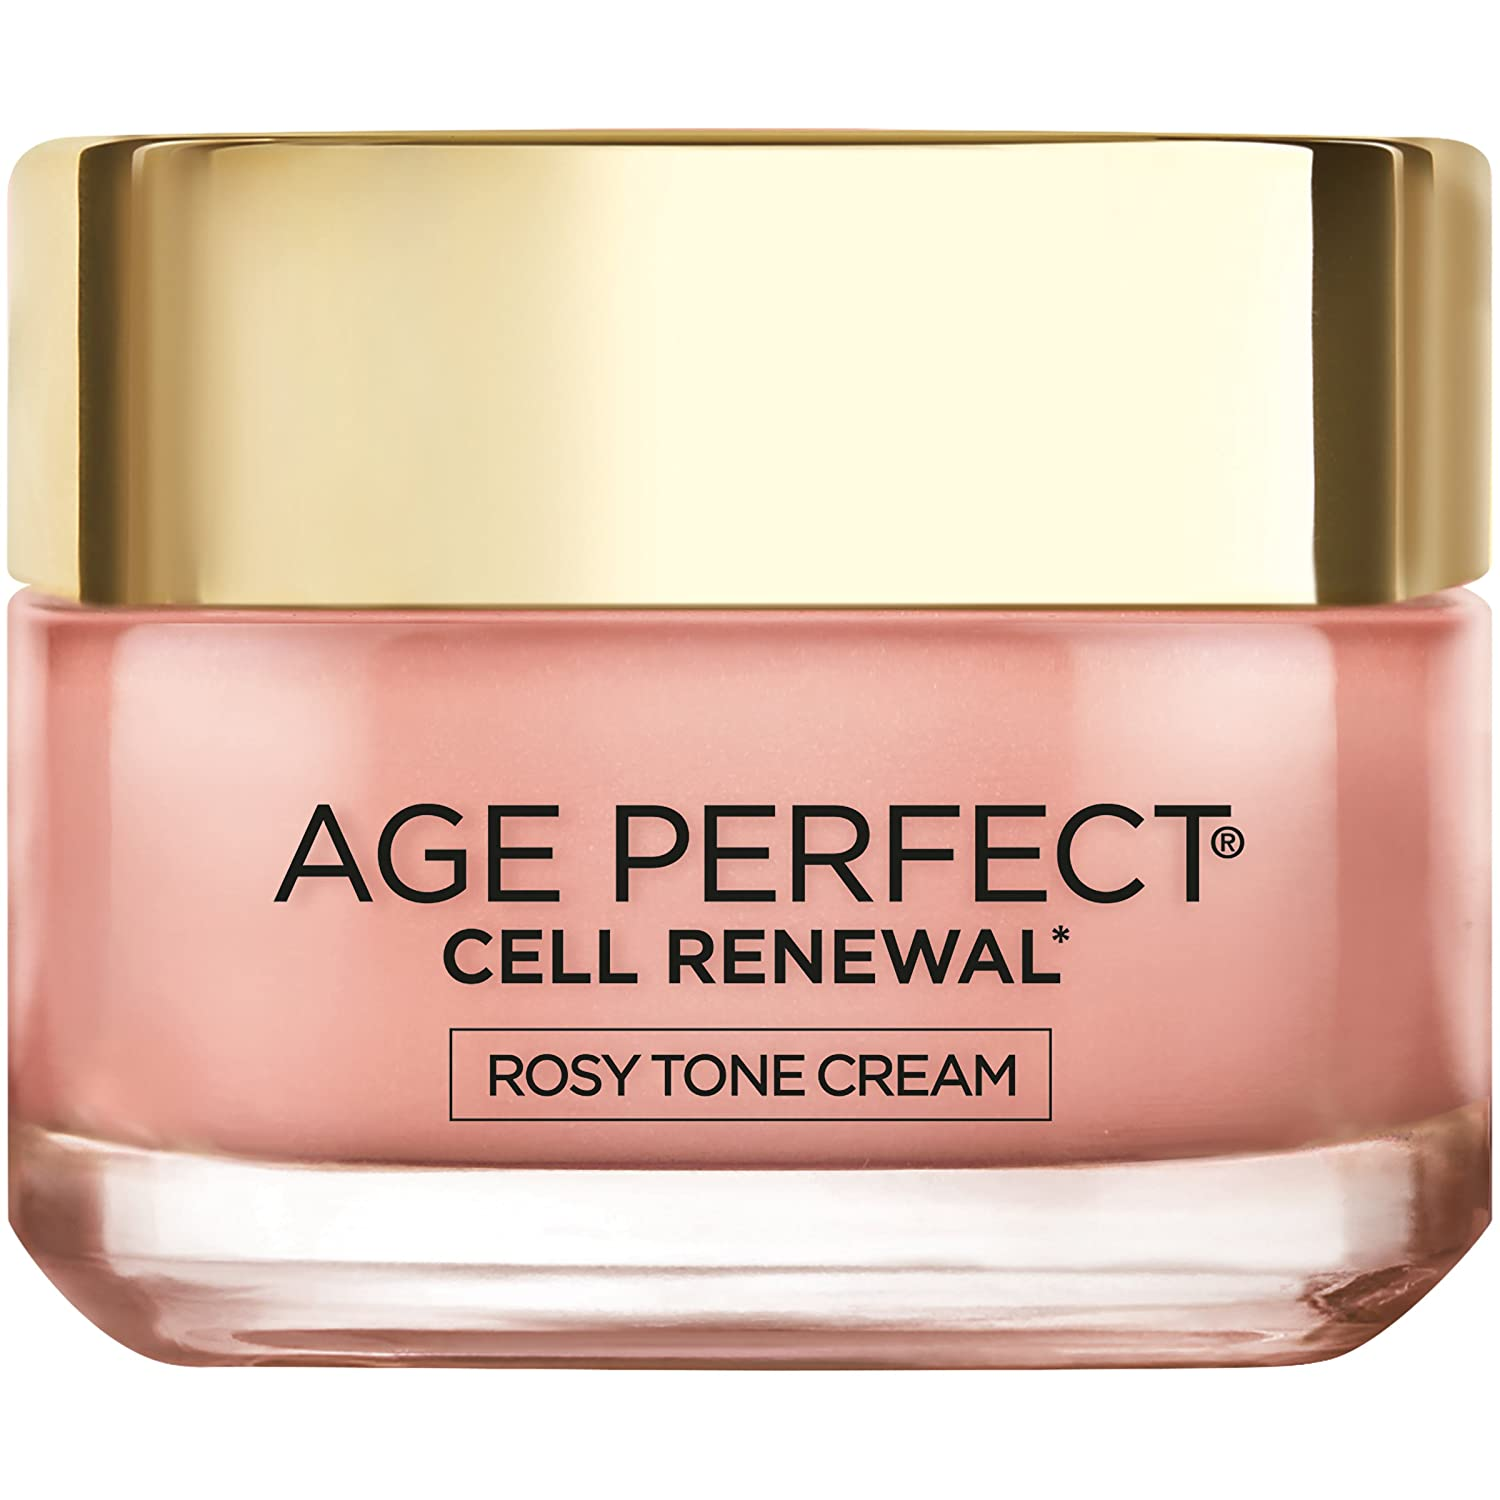 L'Oreal Paris Age Perfect Cell Renewal Tinted Rosy Tone Day Face Cream with LHA & Imperial Peony Extract, Anti-Aging, 50 ML L'Oreal Paris